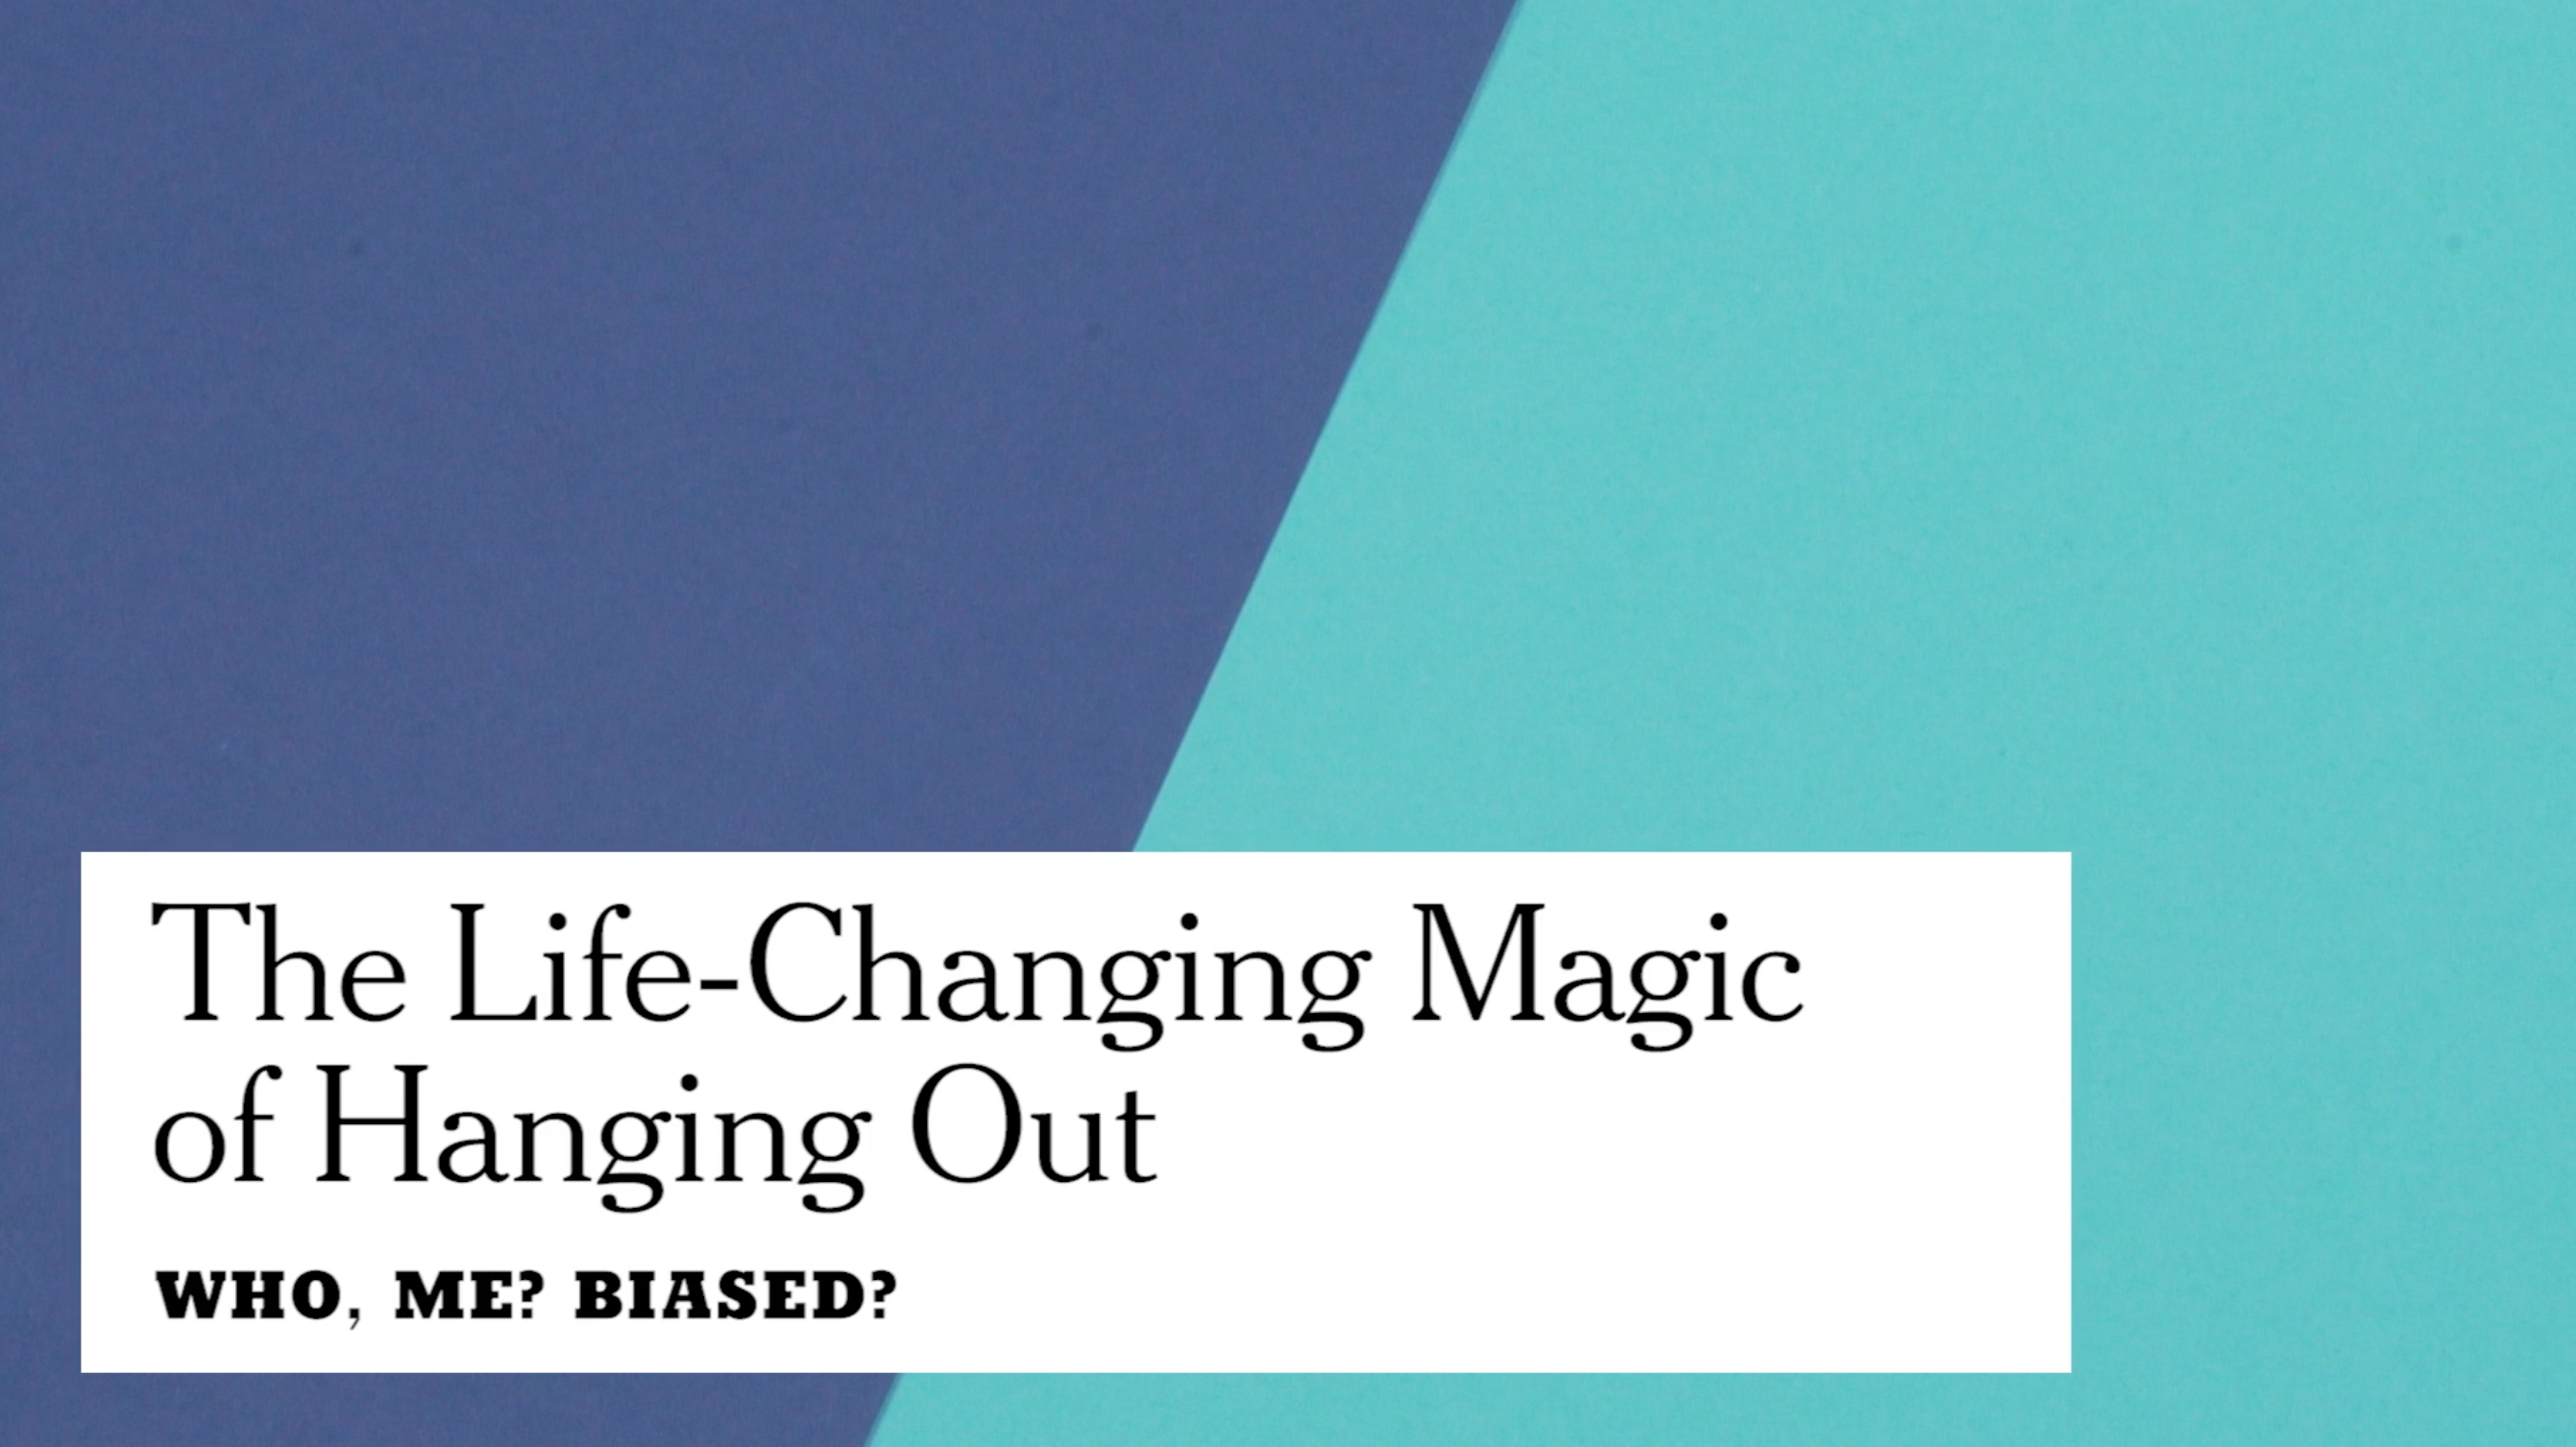 New York Times Video: The Life-Changing Magic of Hanging Out